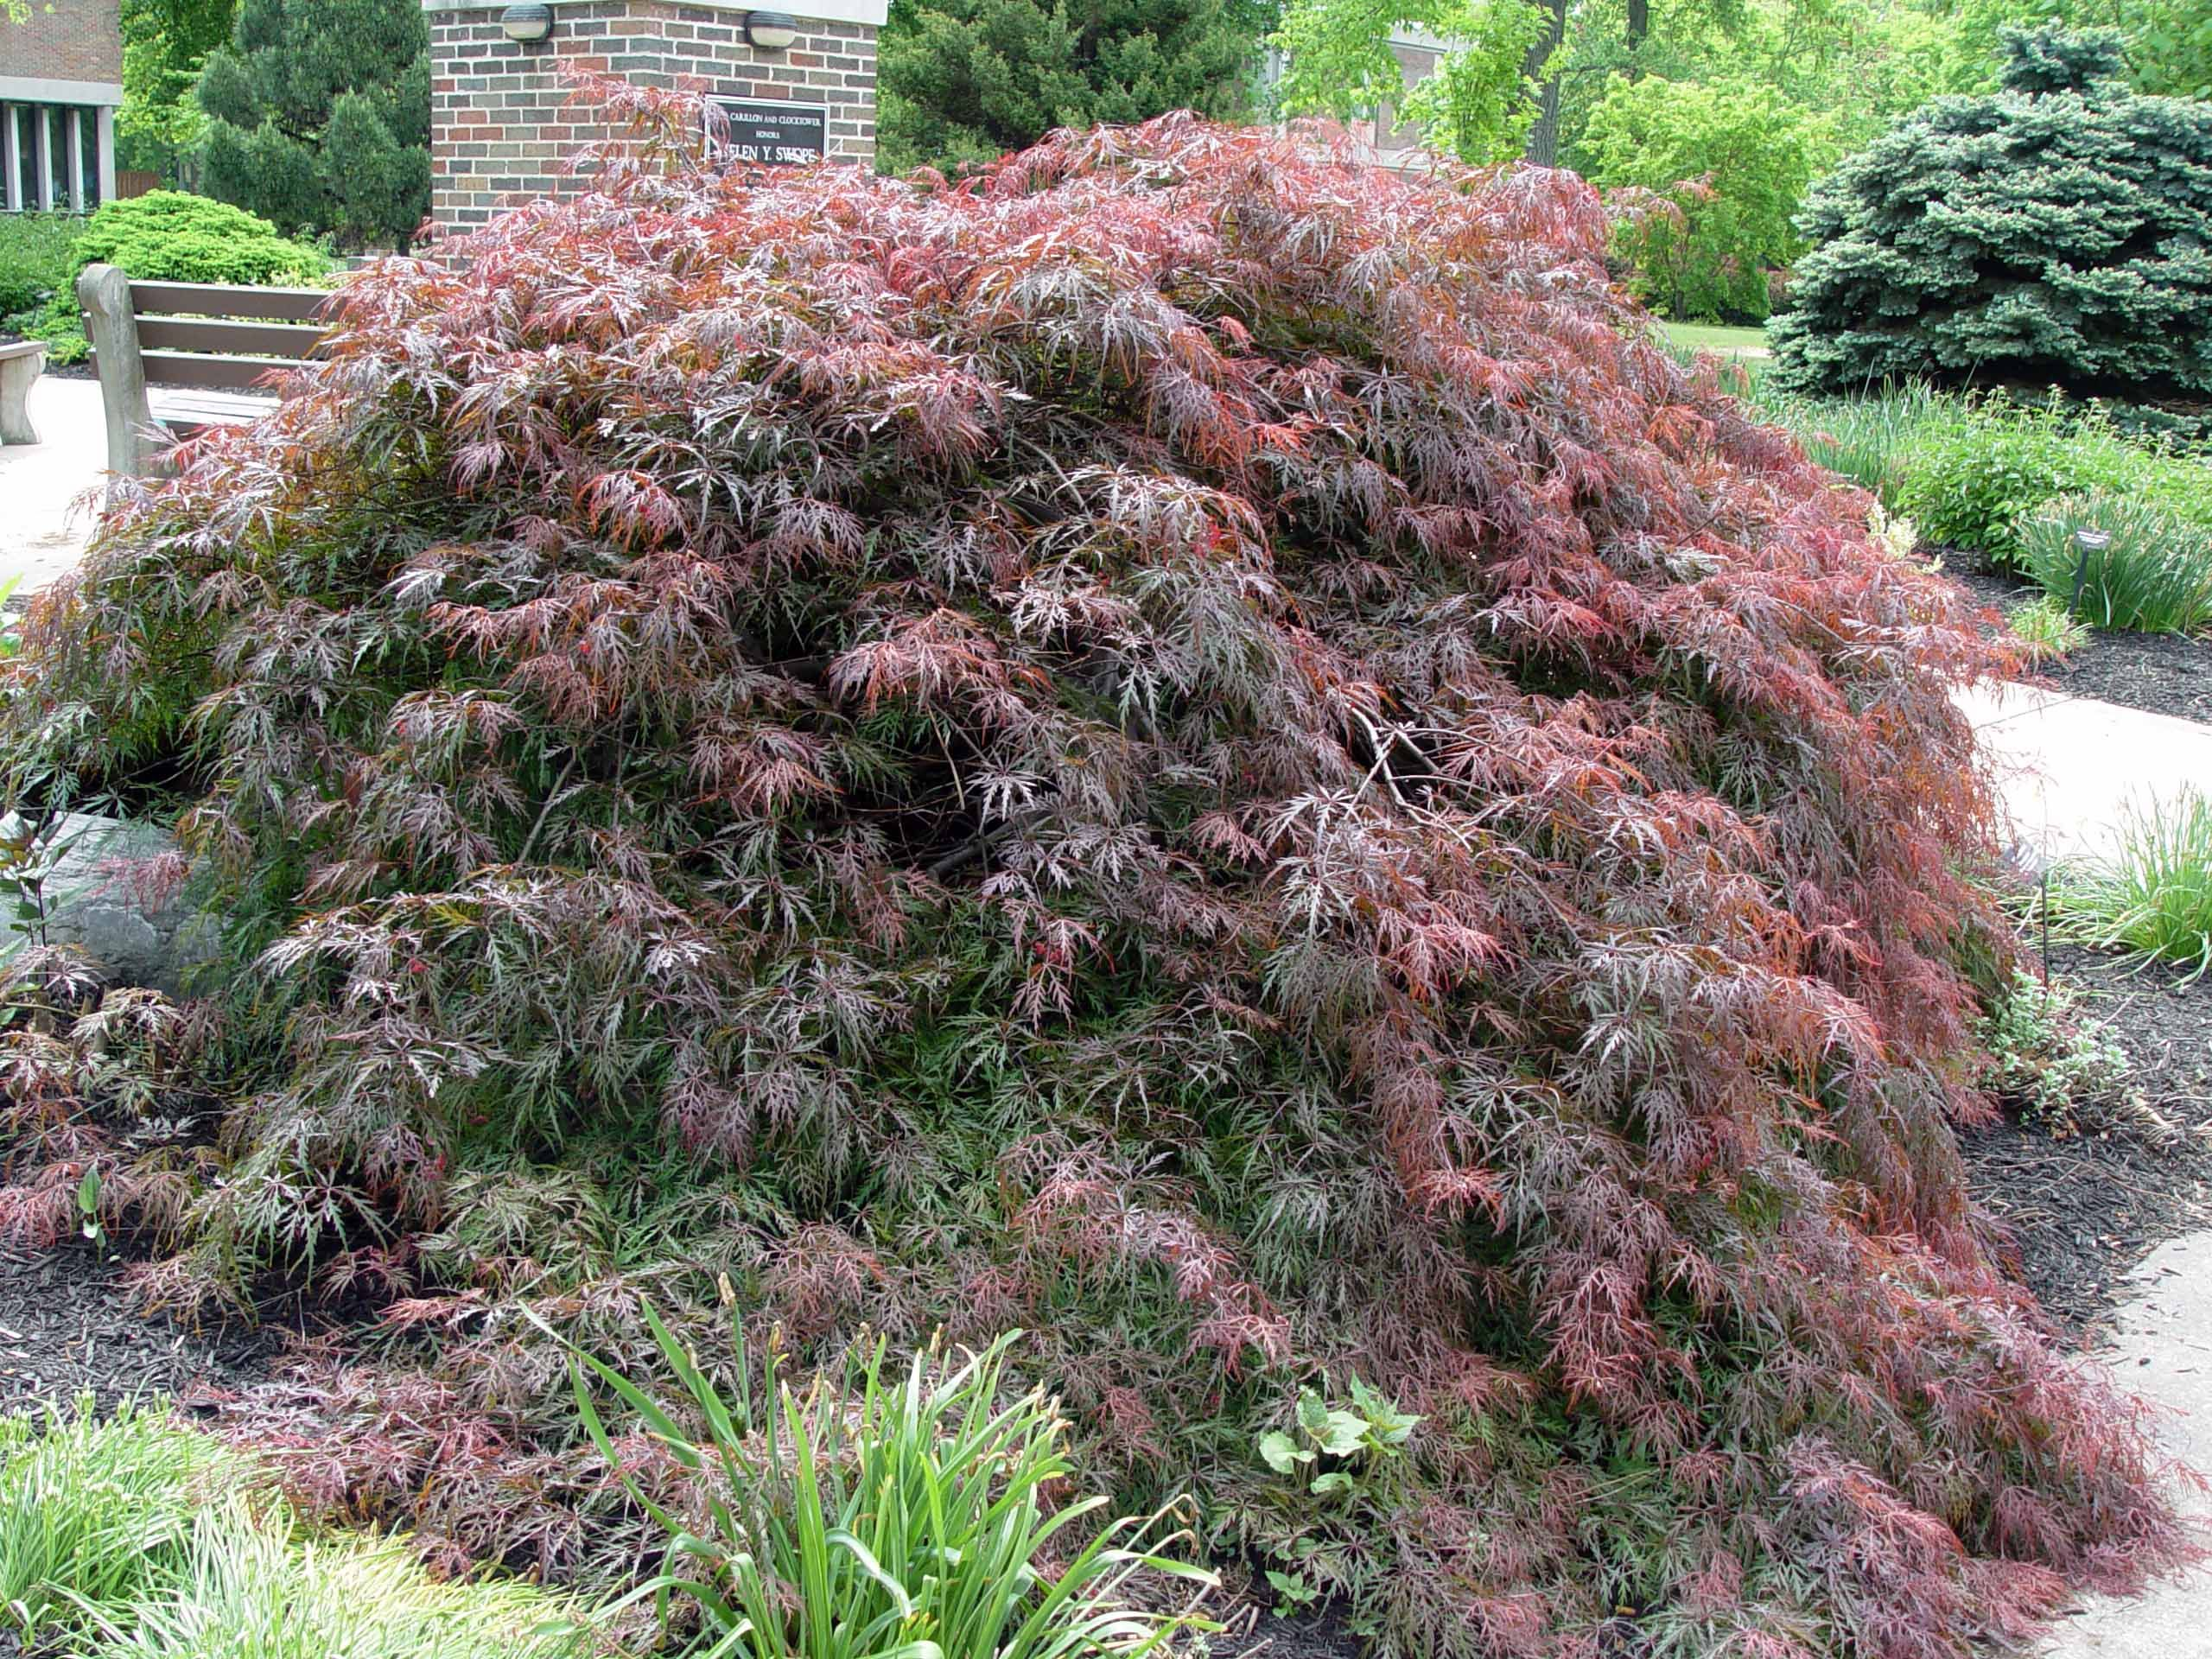 Acer palmatum var dissectum Crimson Queen the standby for red